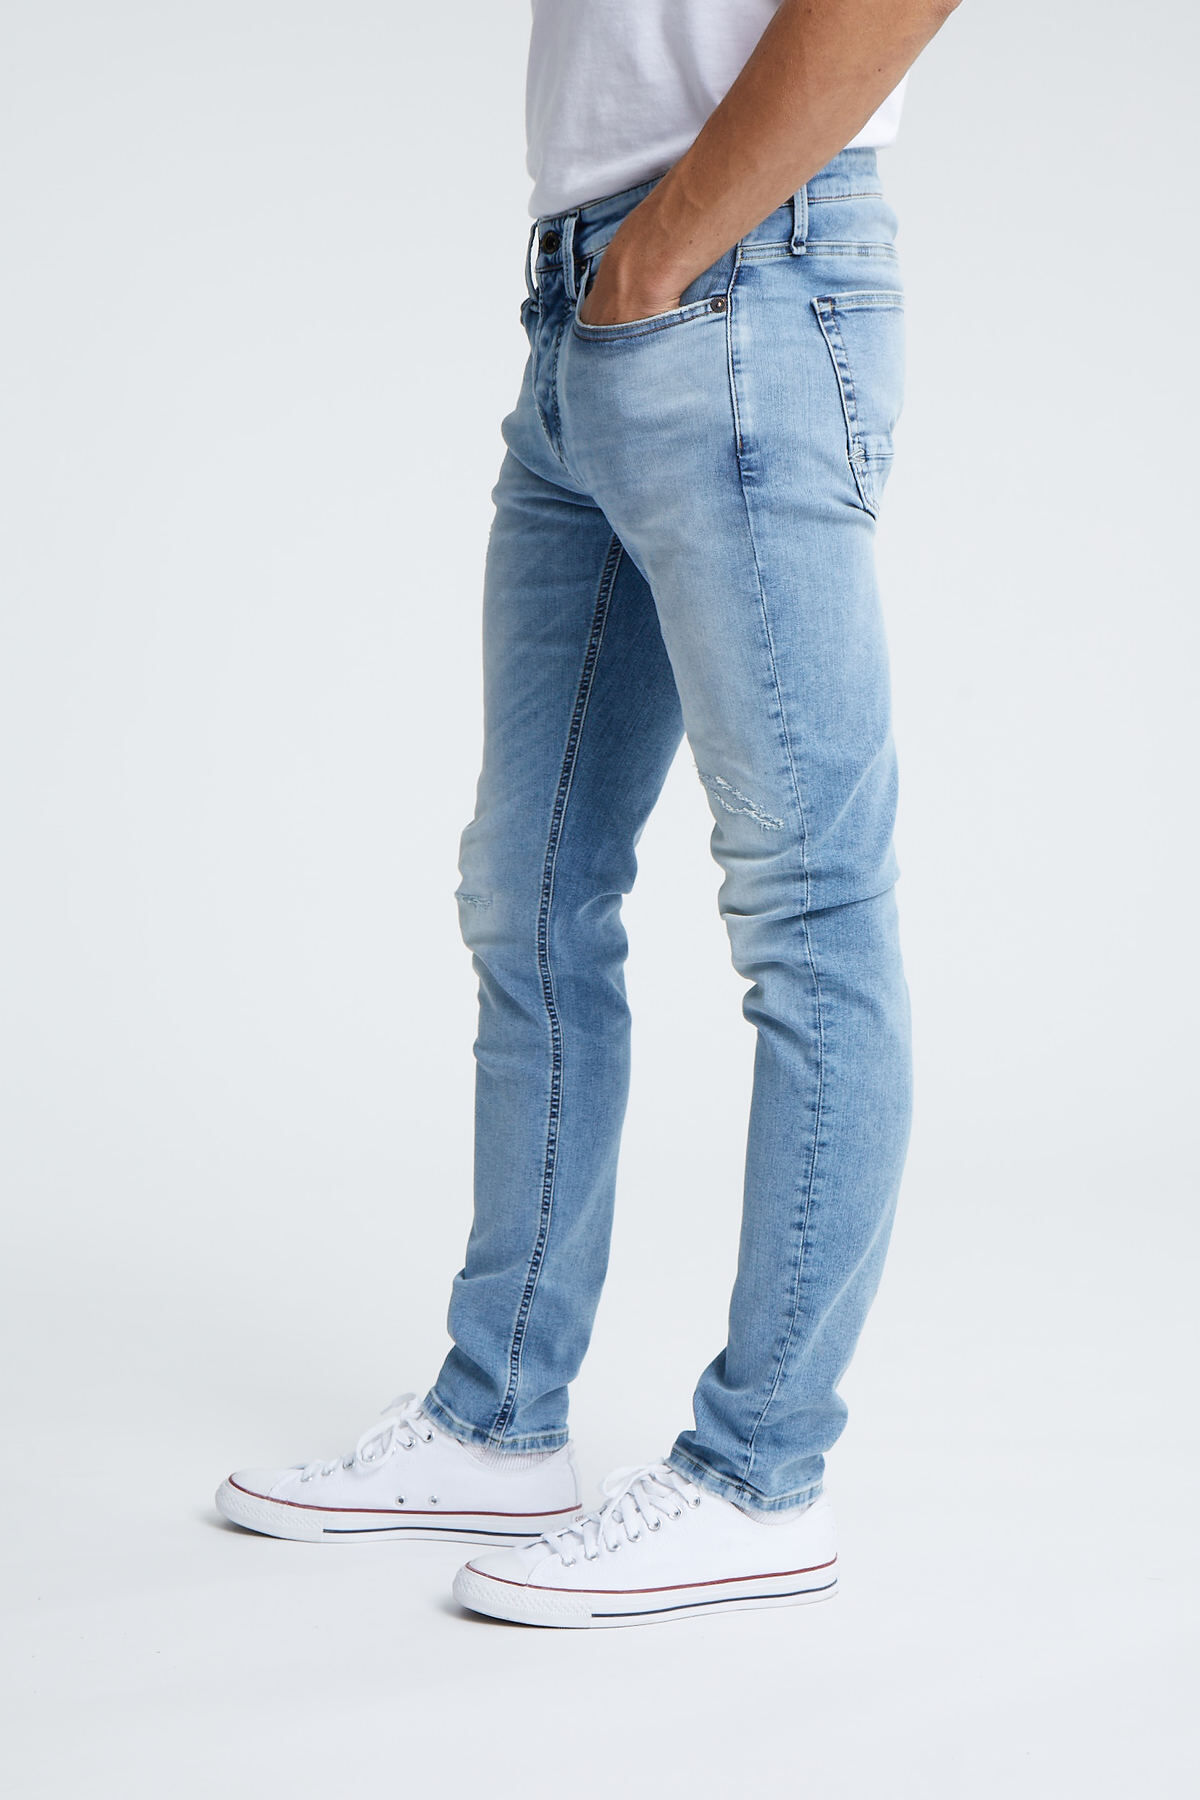 BOLT Four-Year Indigo Denim - Skinny Fit